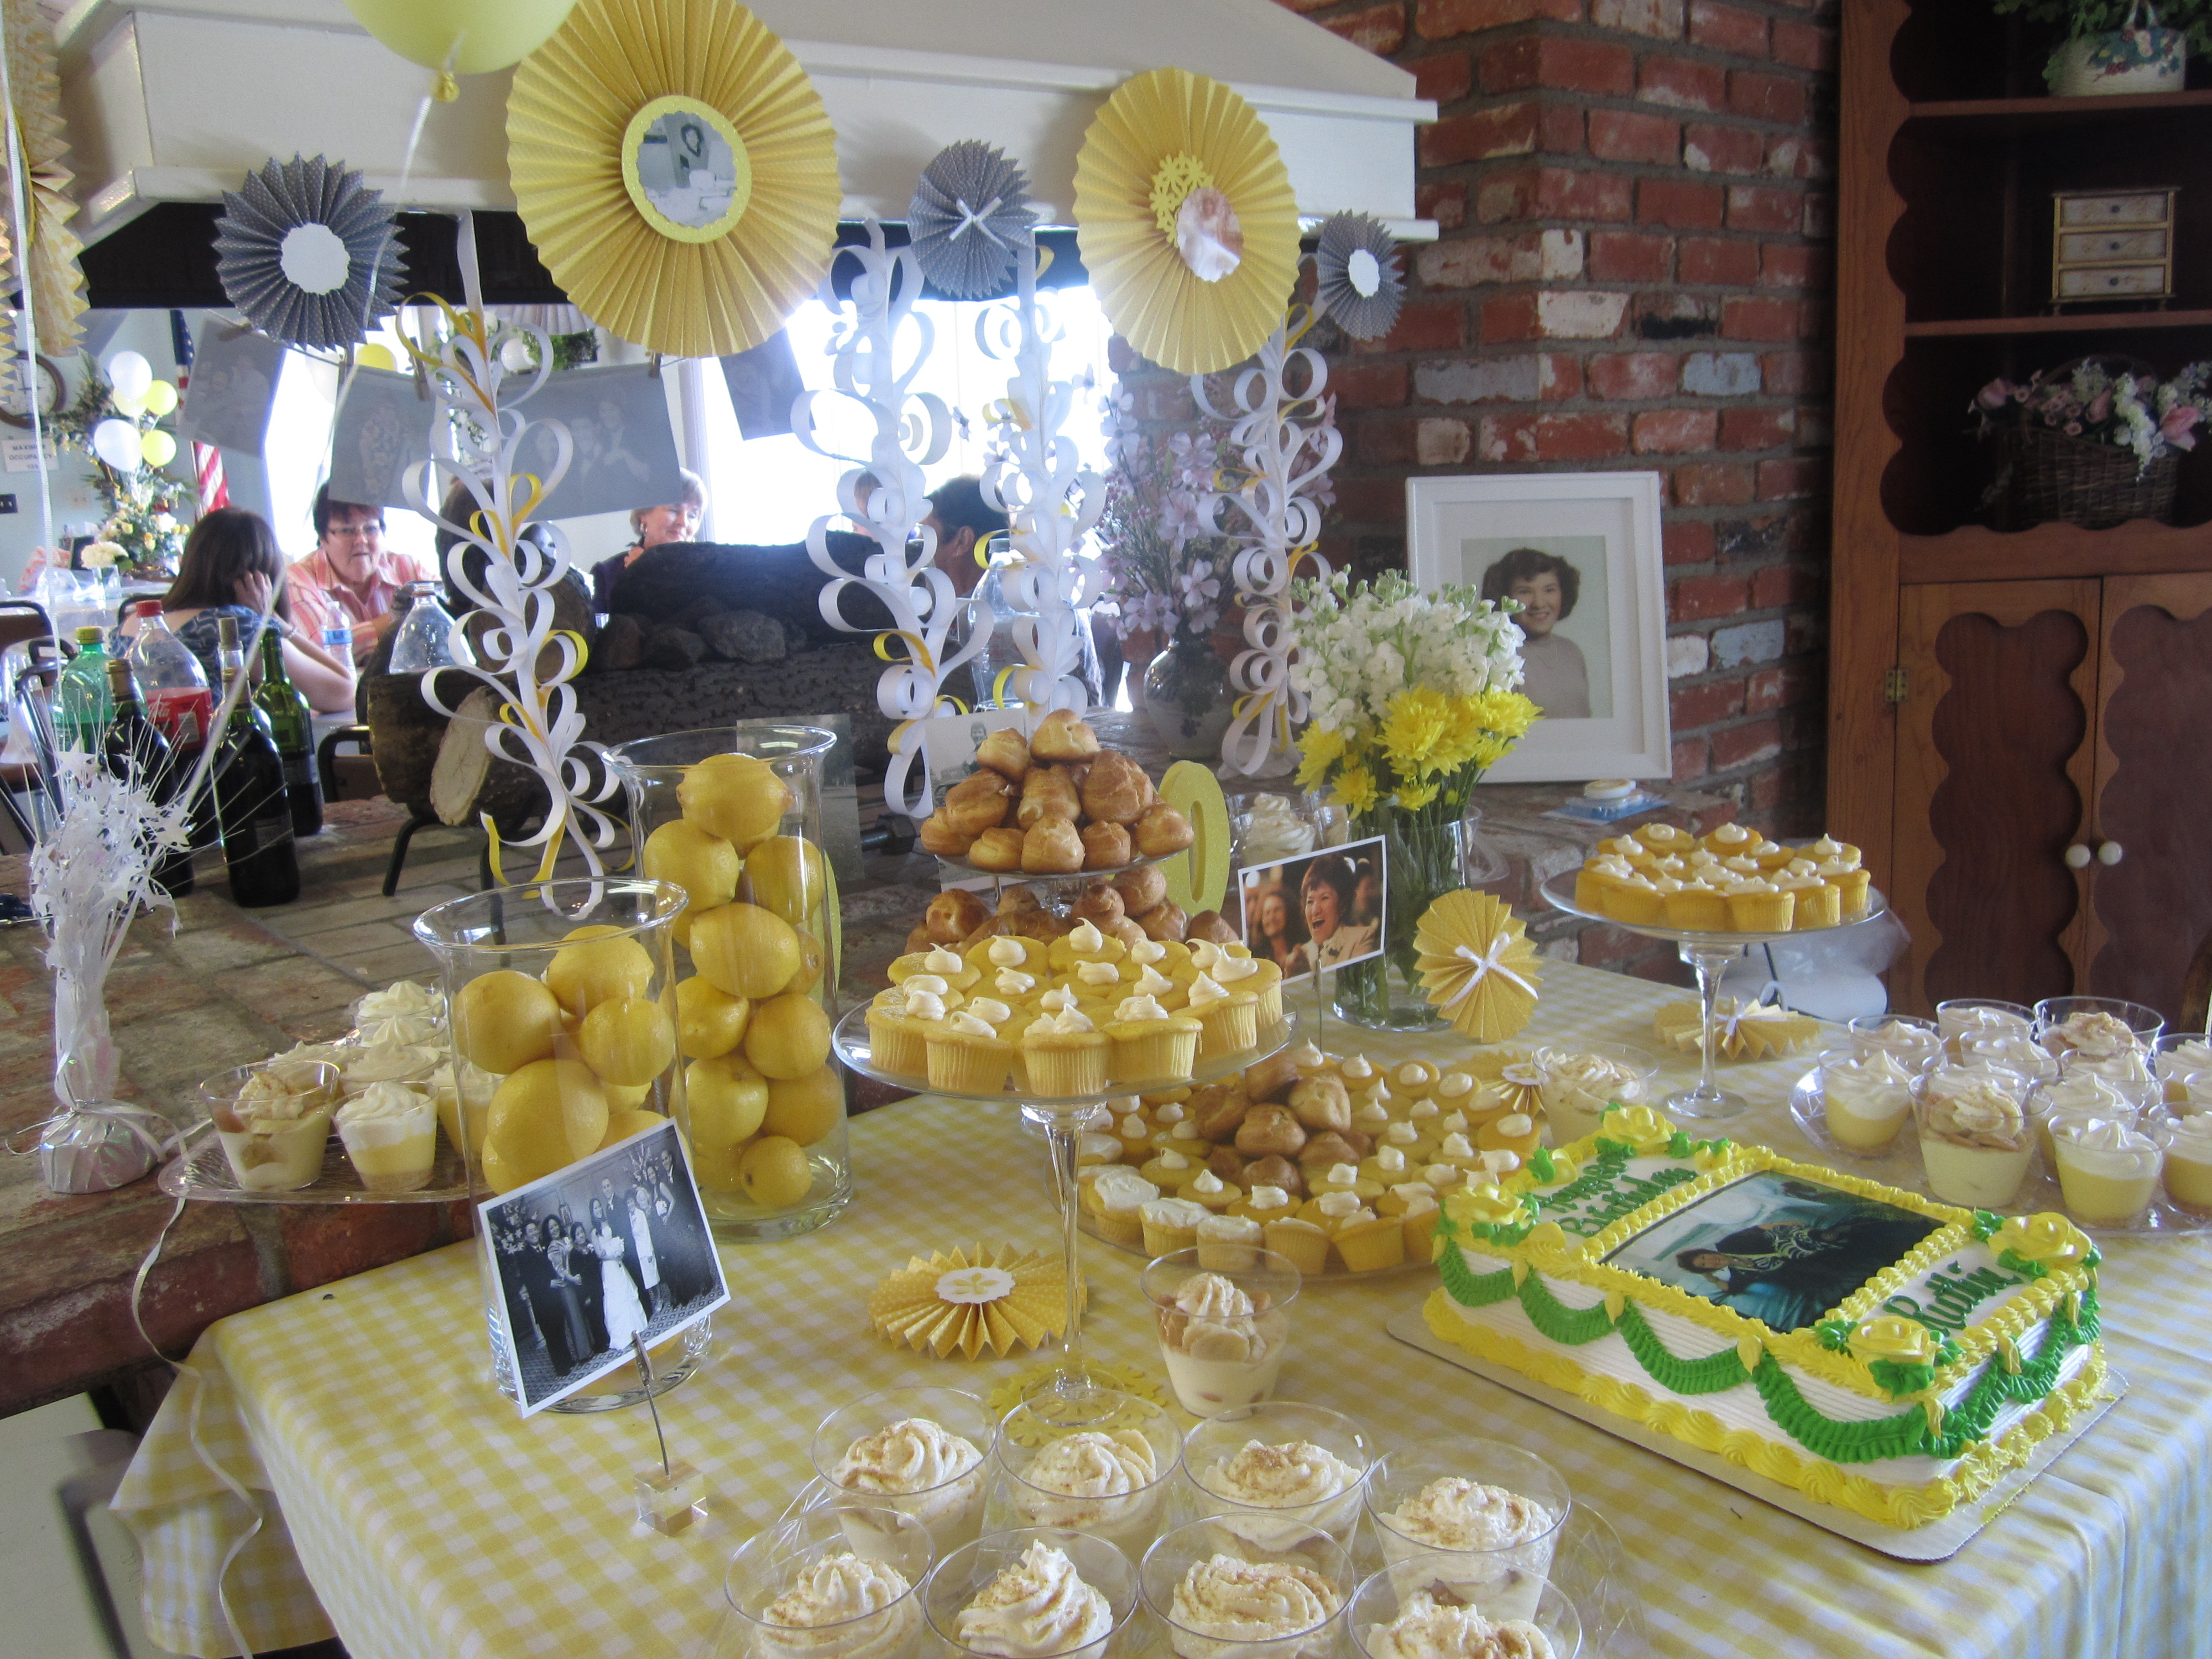 Best ideas about 80th Birthday Decor . Save or Pin Granny's 80th Birthday Celebration and Catering Now.